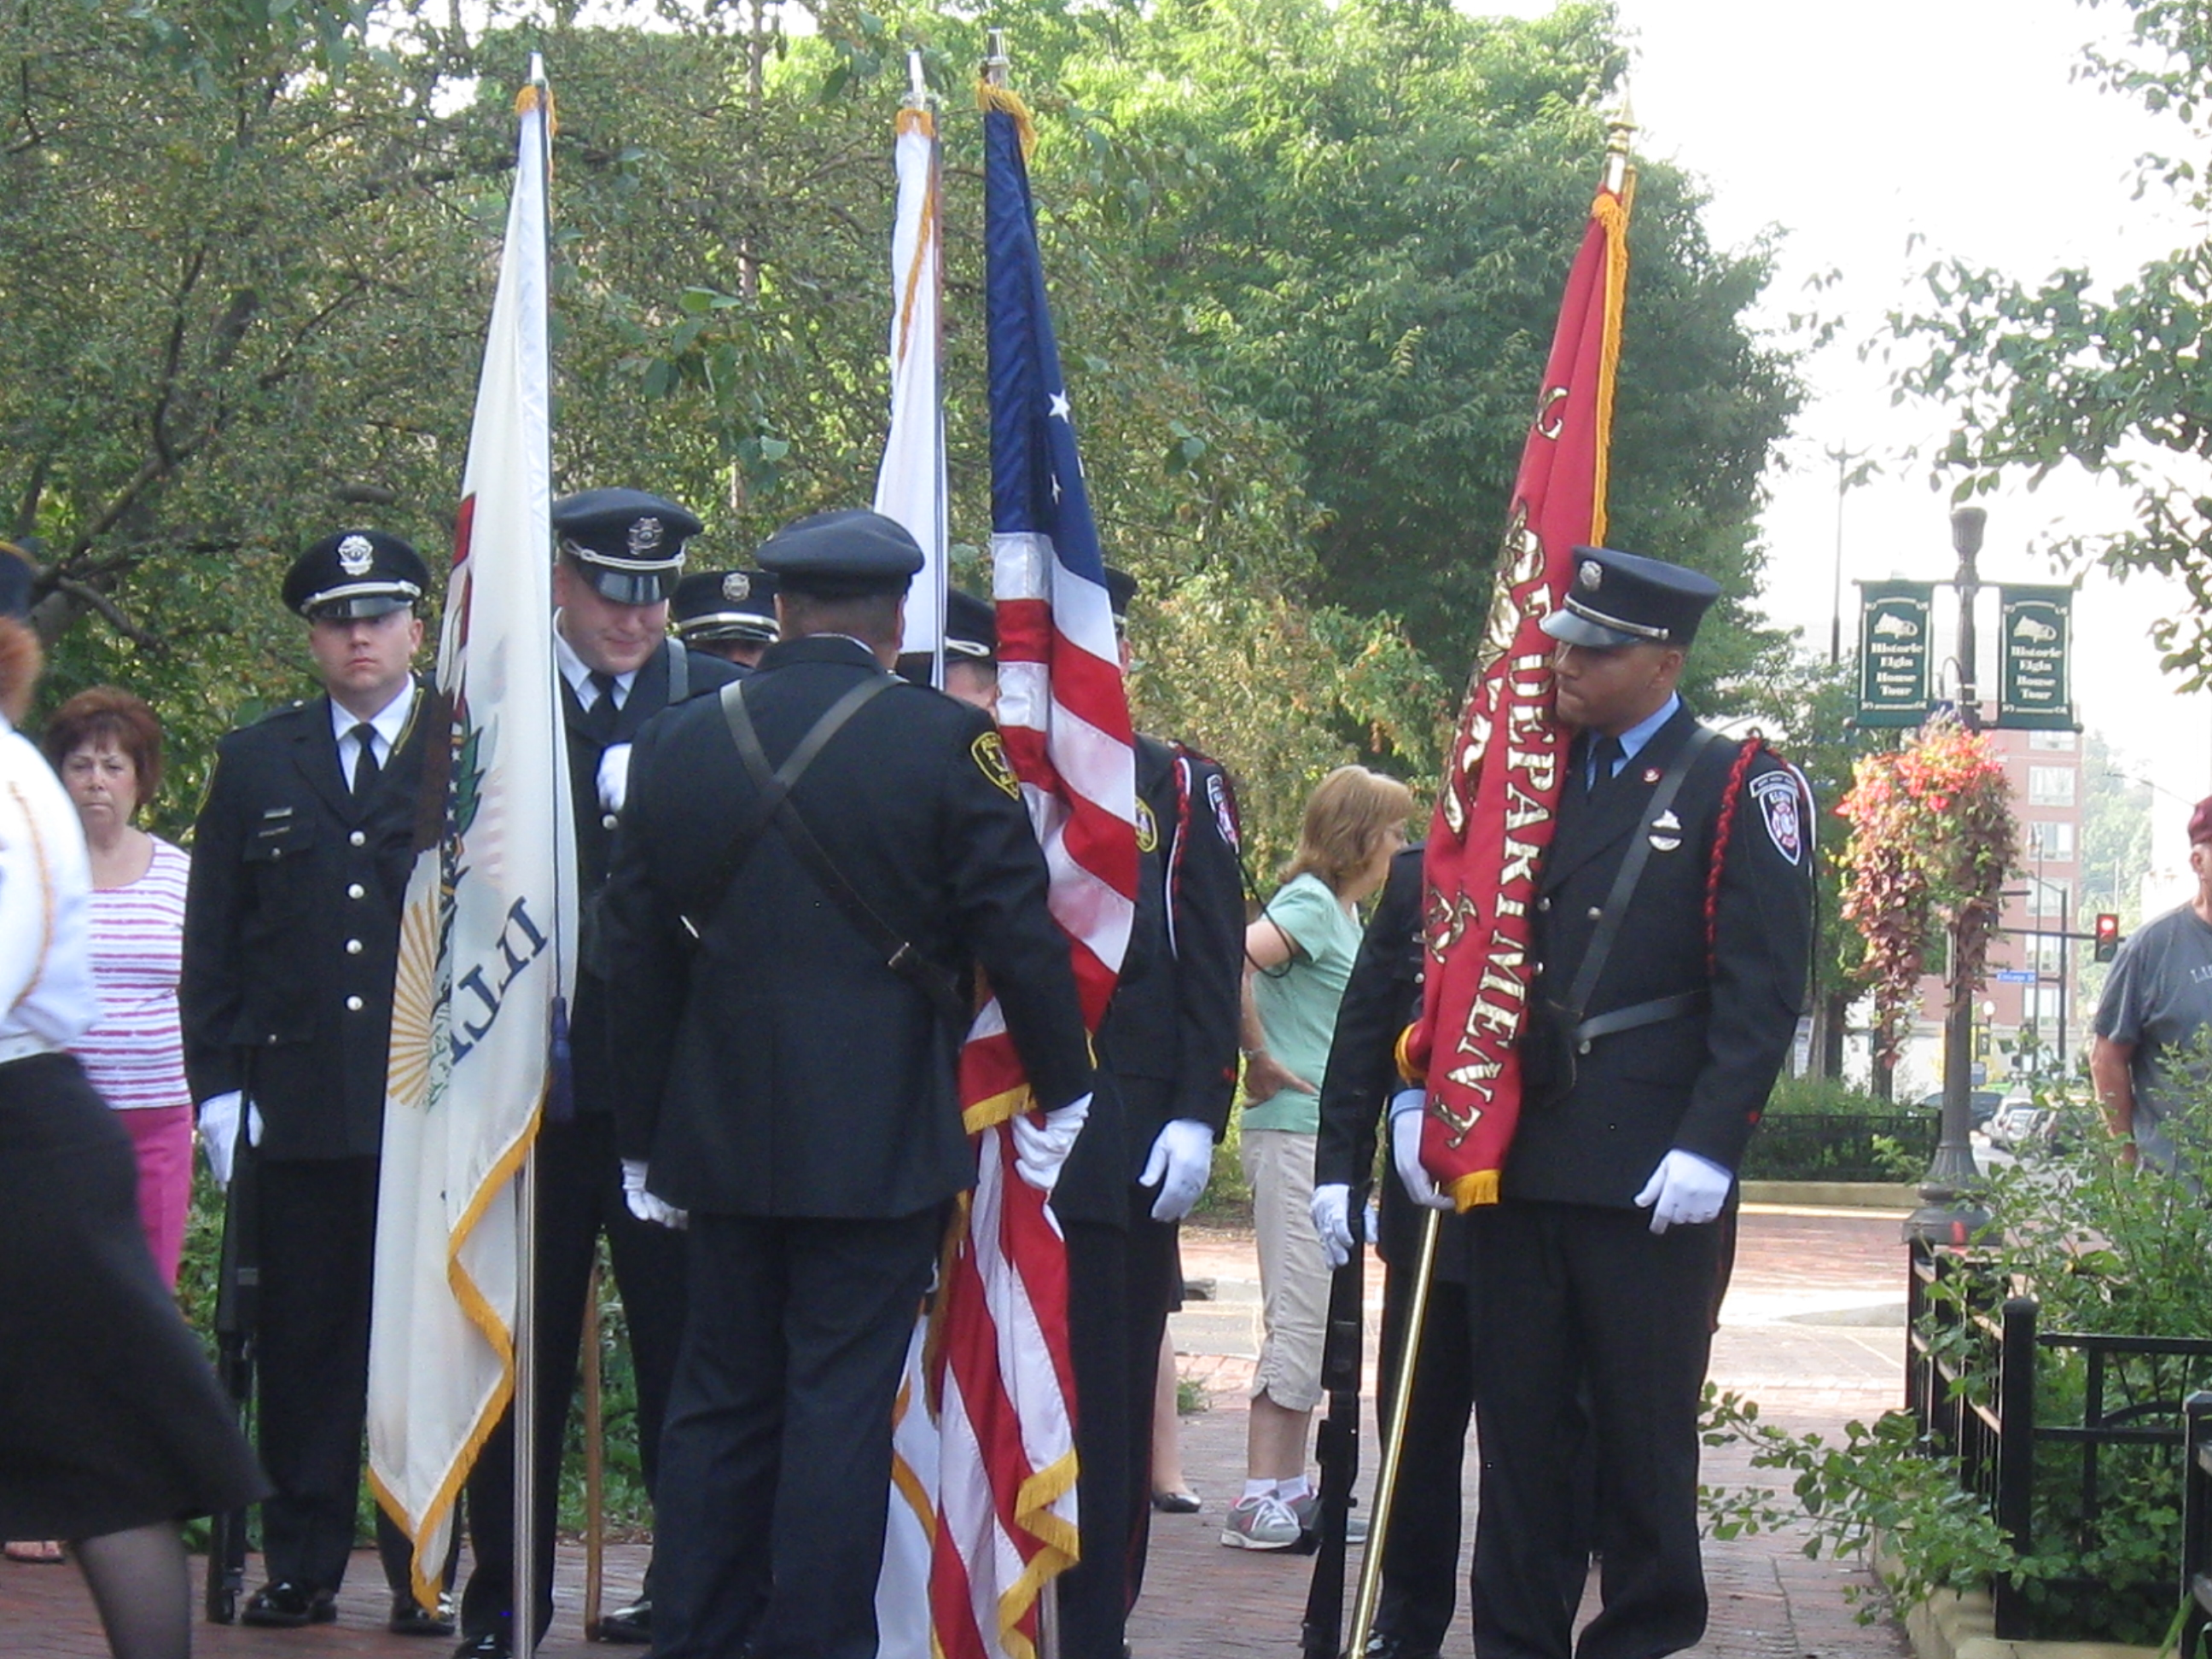 2013 Ceremony Honoring September 11th